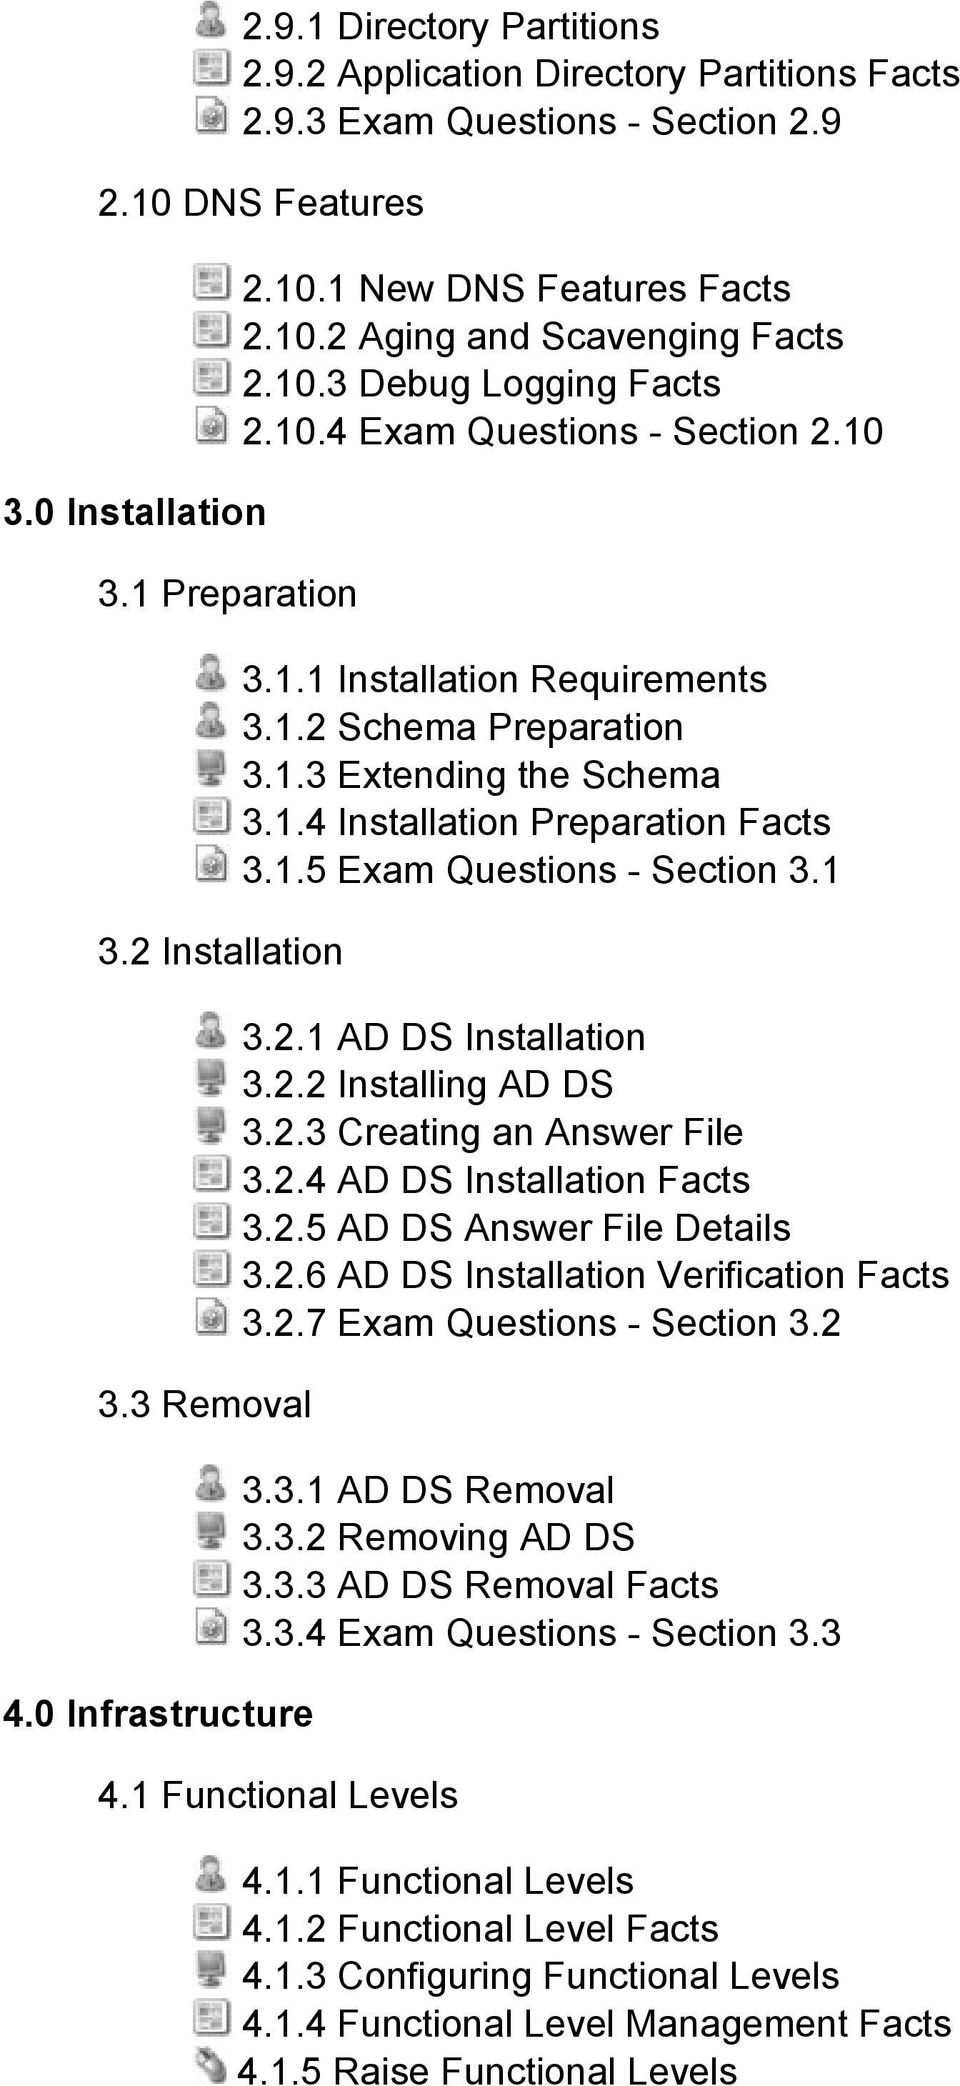 1.3 Extending the Schema 3.1.4 Installation Preparation Facts 3.1.5 Exam Questions Section 3.1 3.2.1 AD DS Installation 3.2.2 Installing AD DS 3.2.3 Creating an Answer File 3.2.4 AD DS Installation Facts 3.